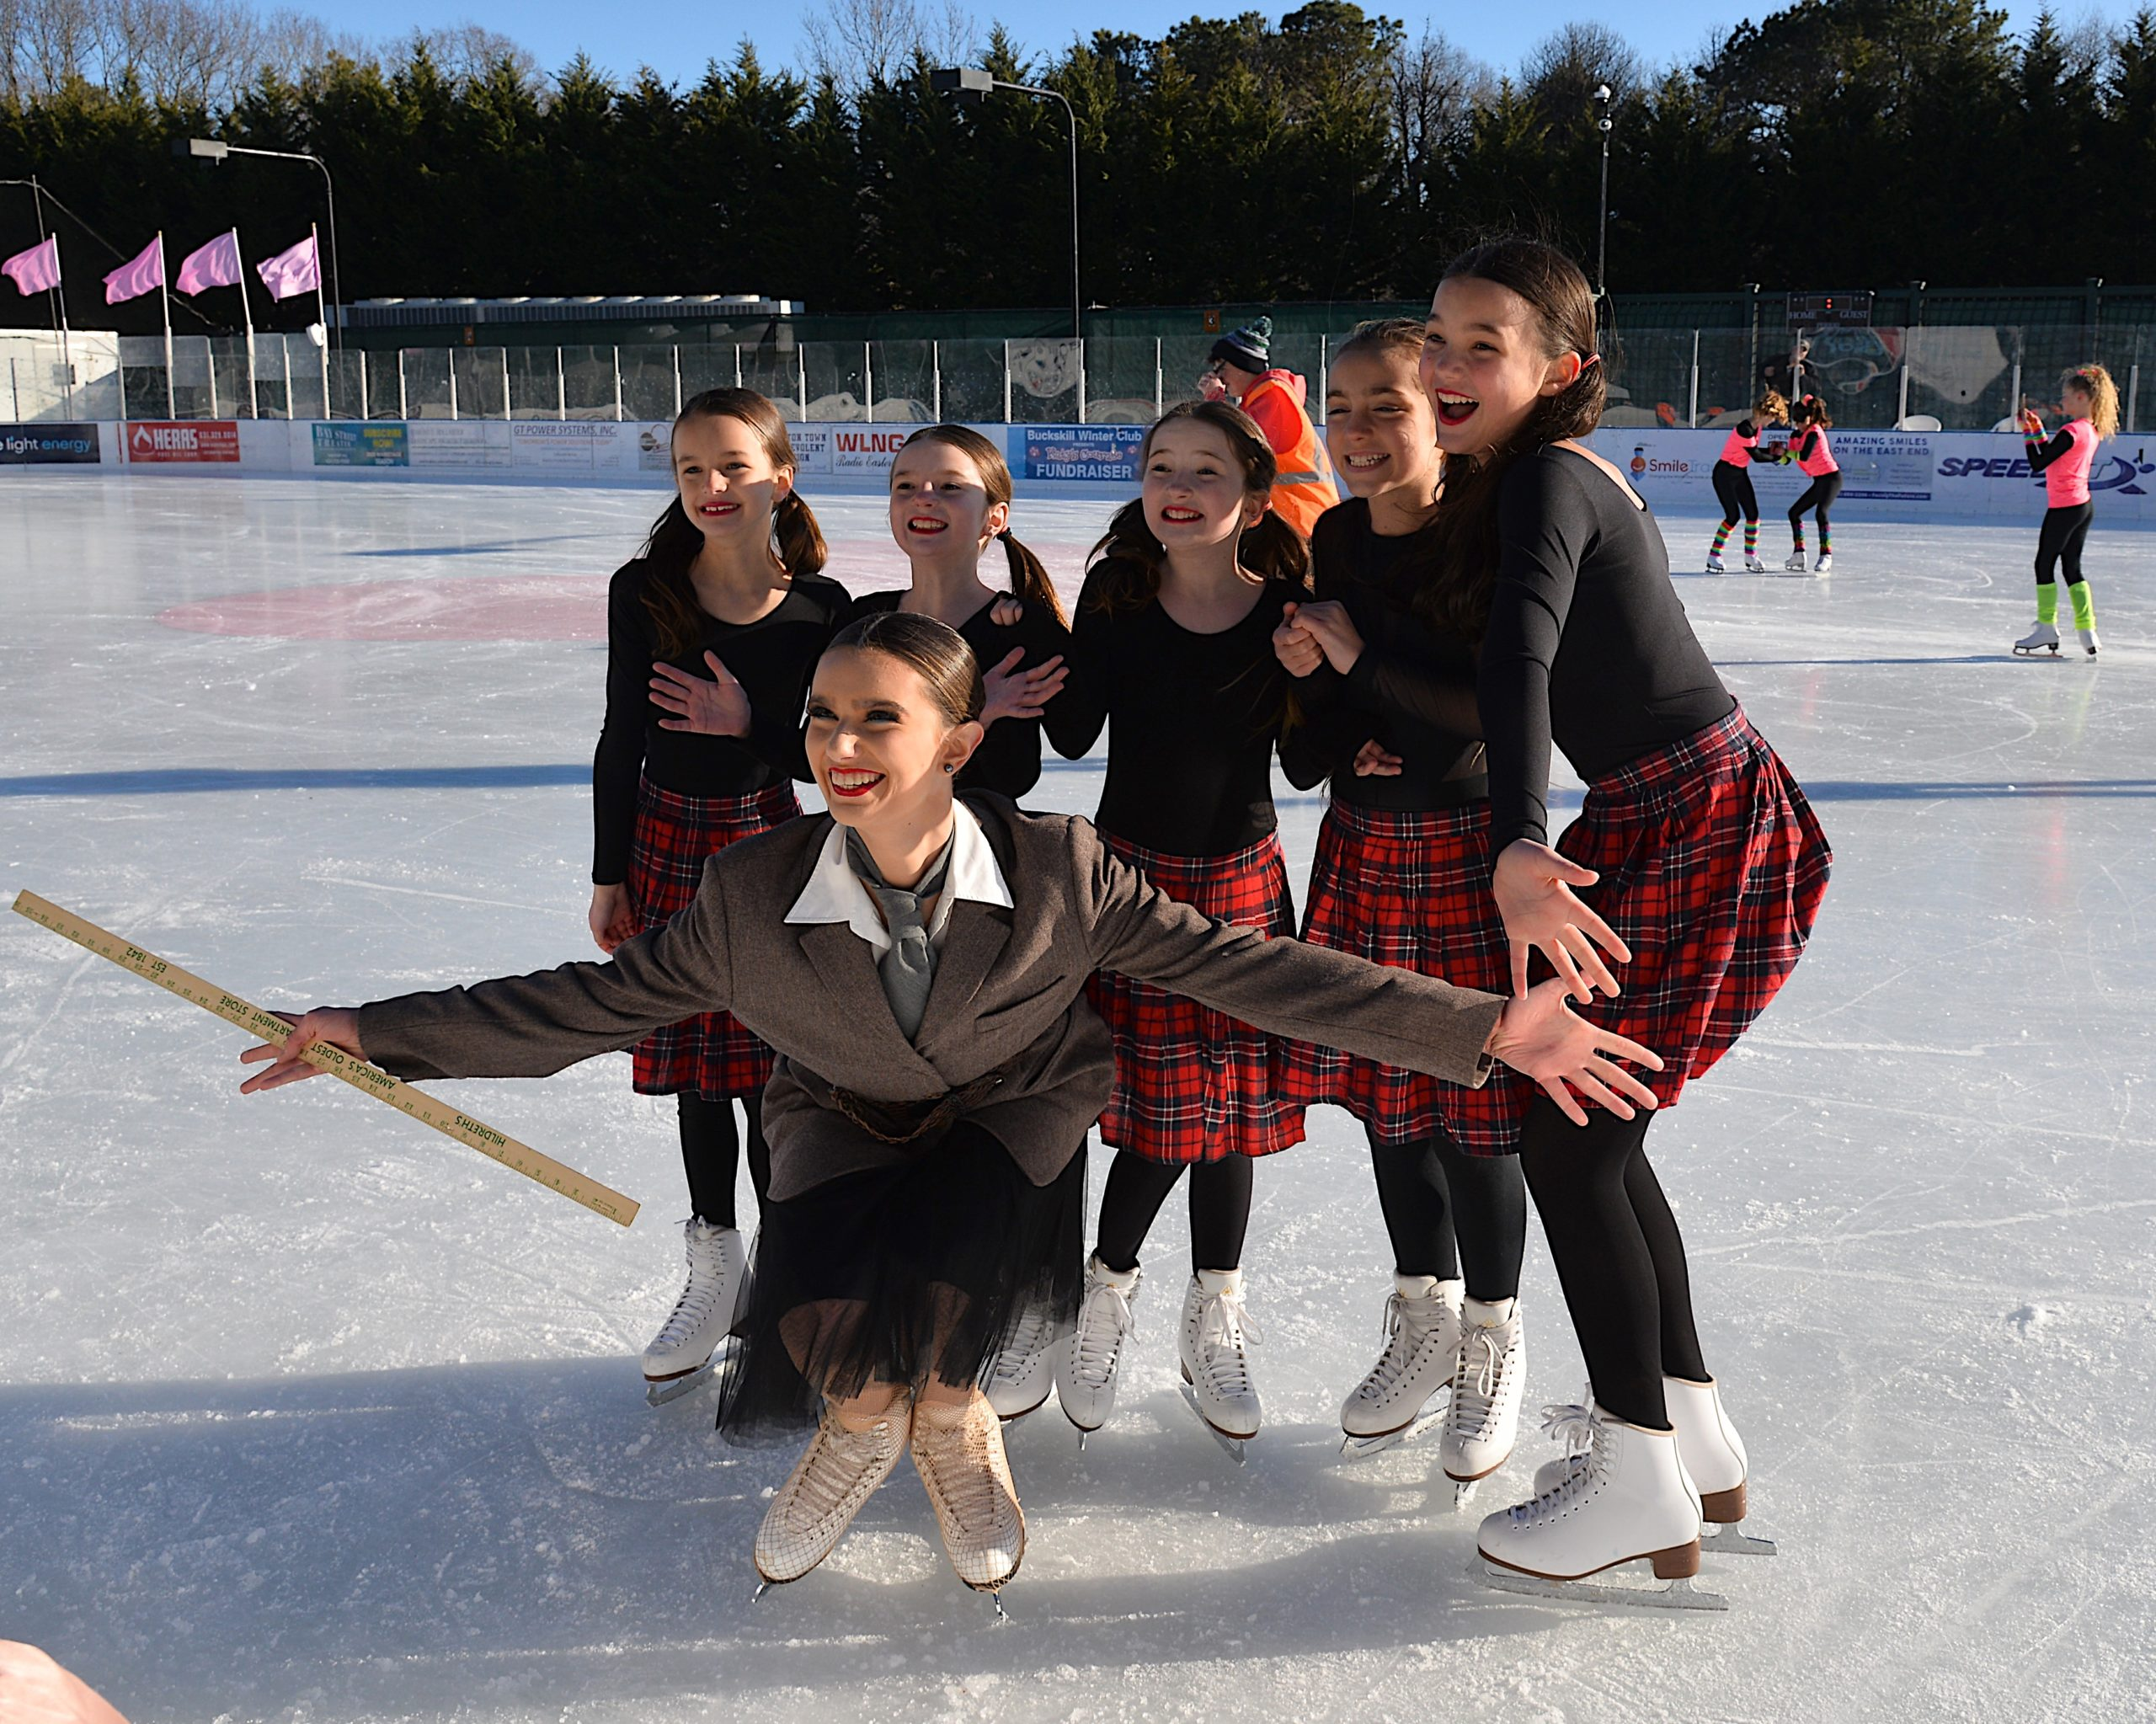 The ninth annual Katy's Courage skate-a-thon was held at the Buckskill Winter Club Sunday, raising funds for the education, support and pediatric cancer research. KYRIL BROMLEY